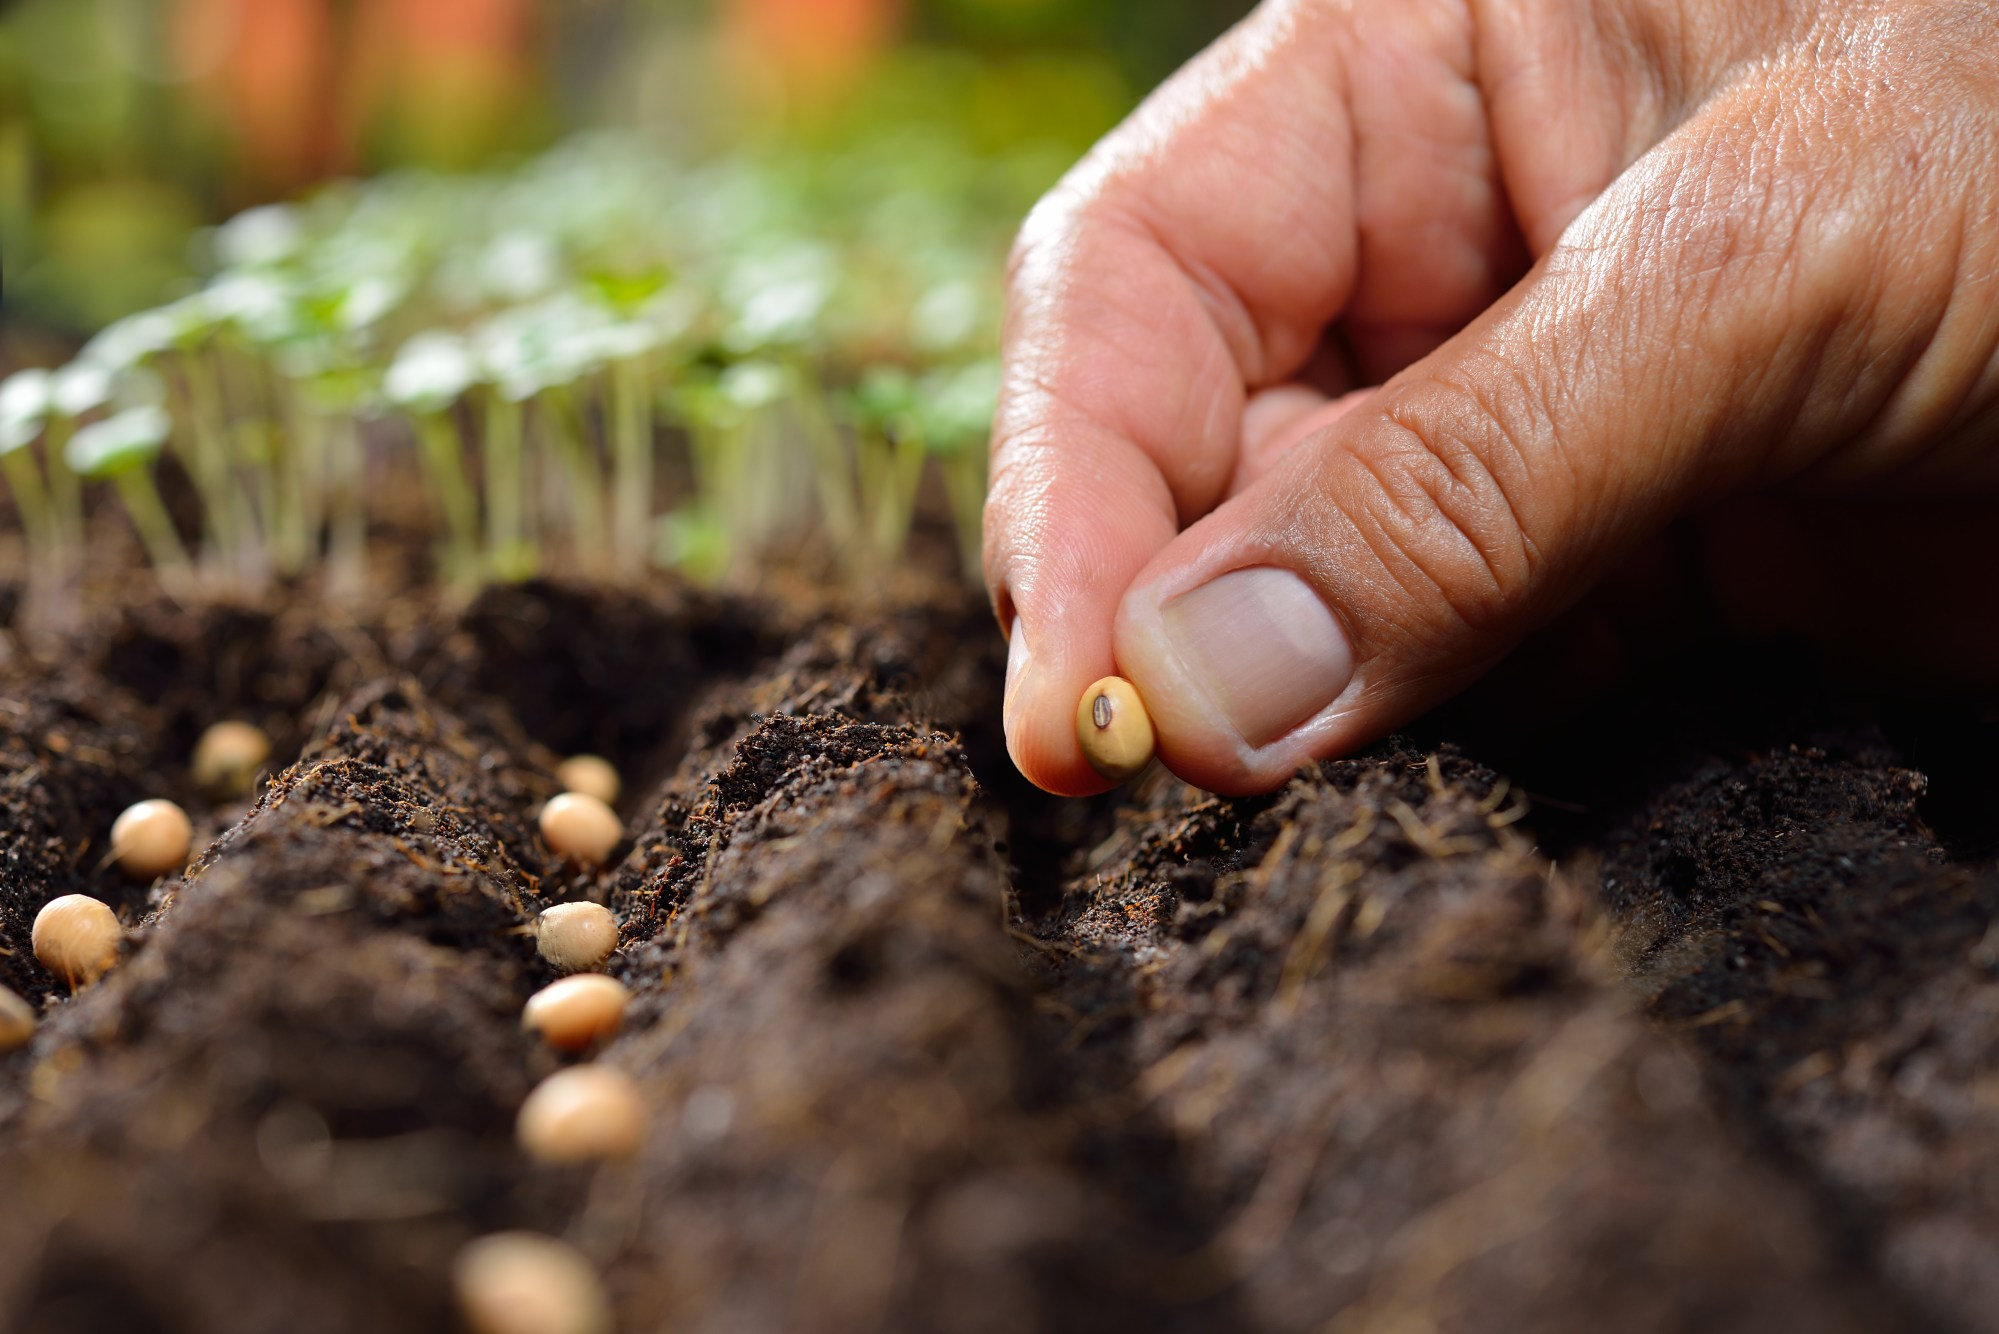 hight resolution of germination of bean seeds without soil